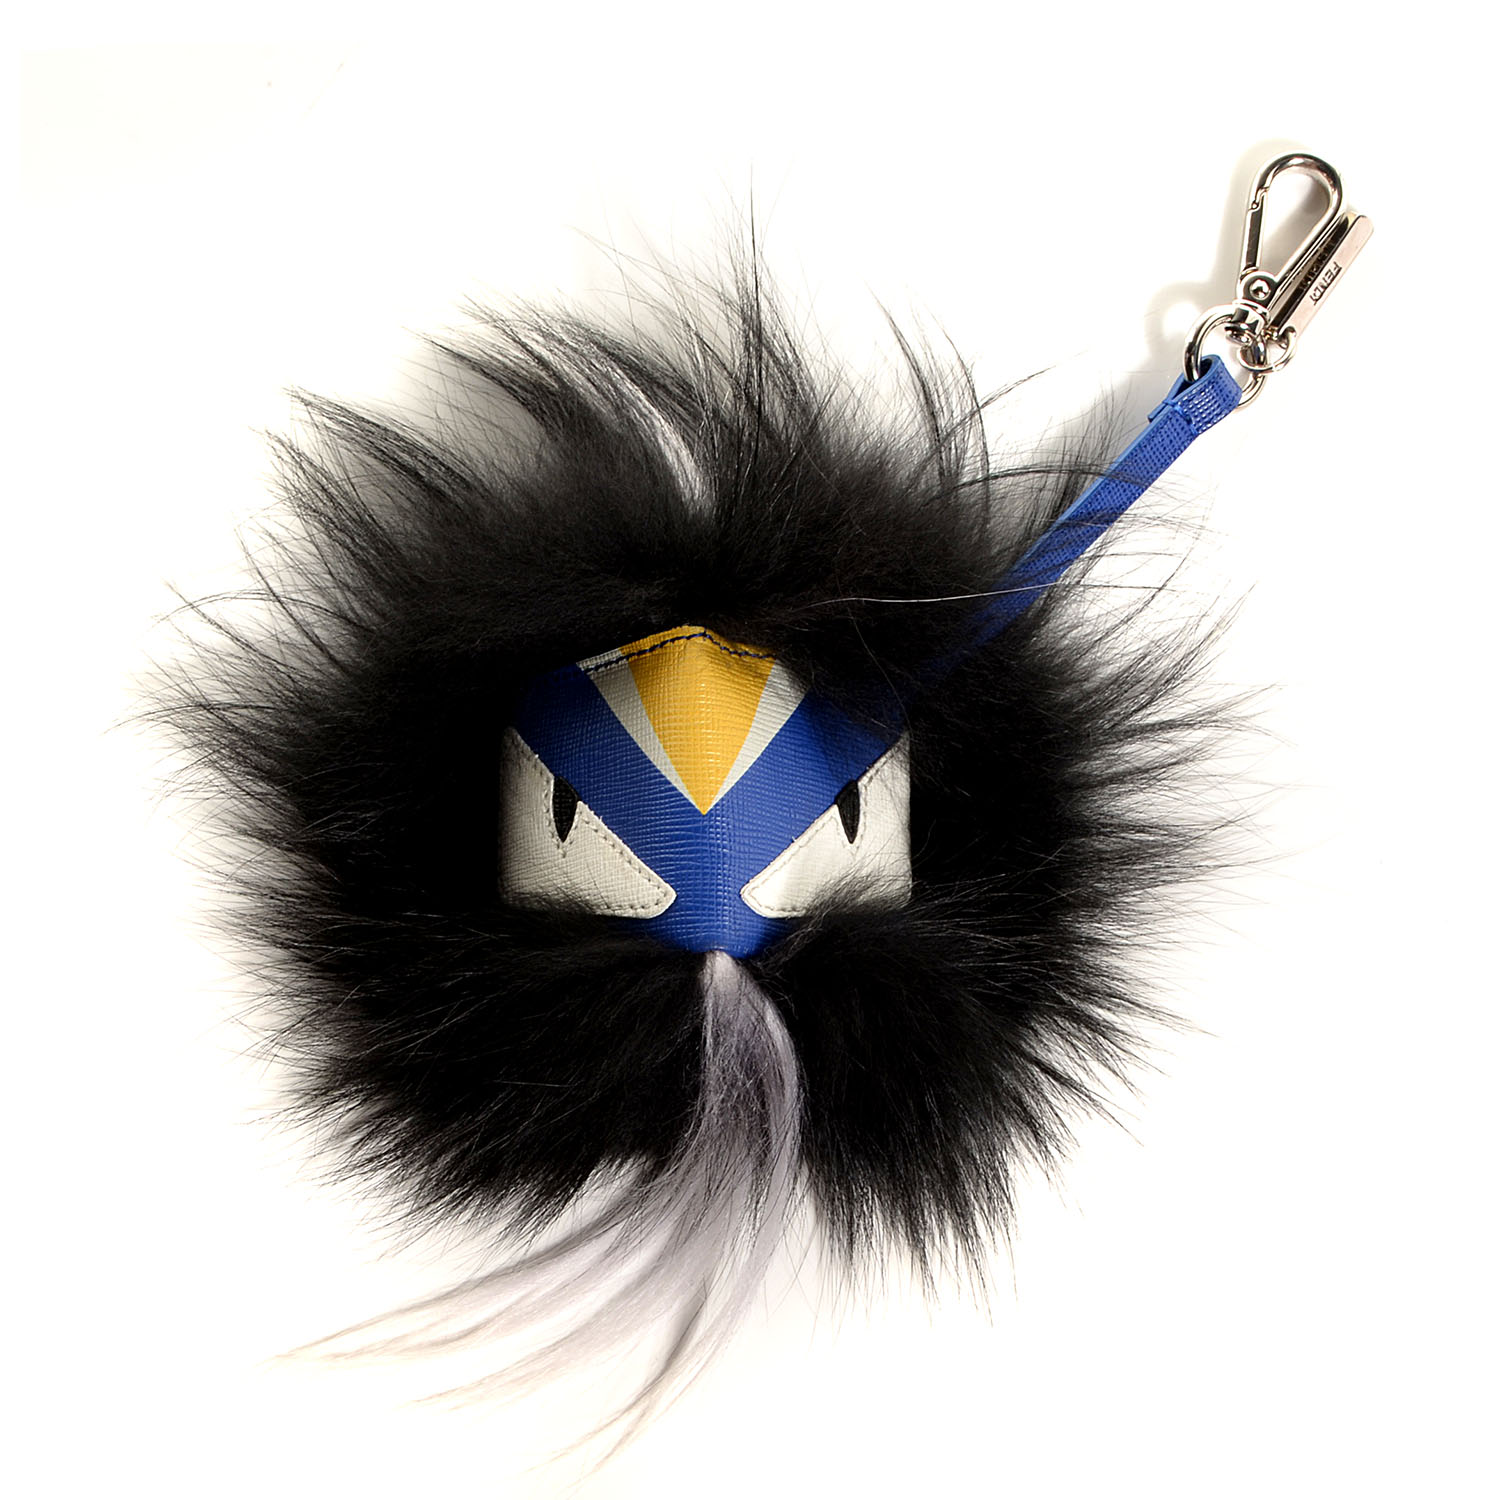 Kylie Jenner Key Chain | Fendi Fur Monster | Bug Keychain